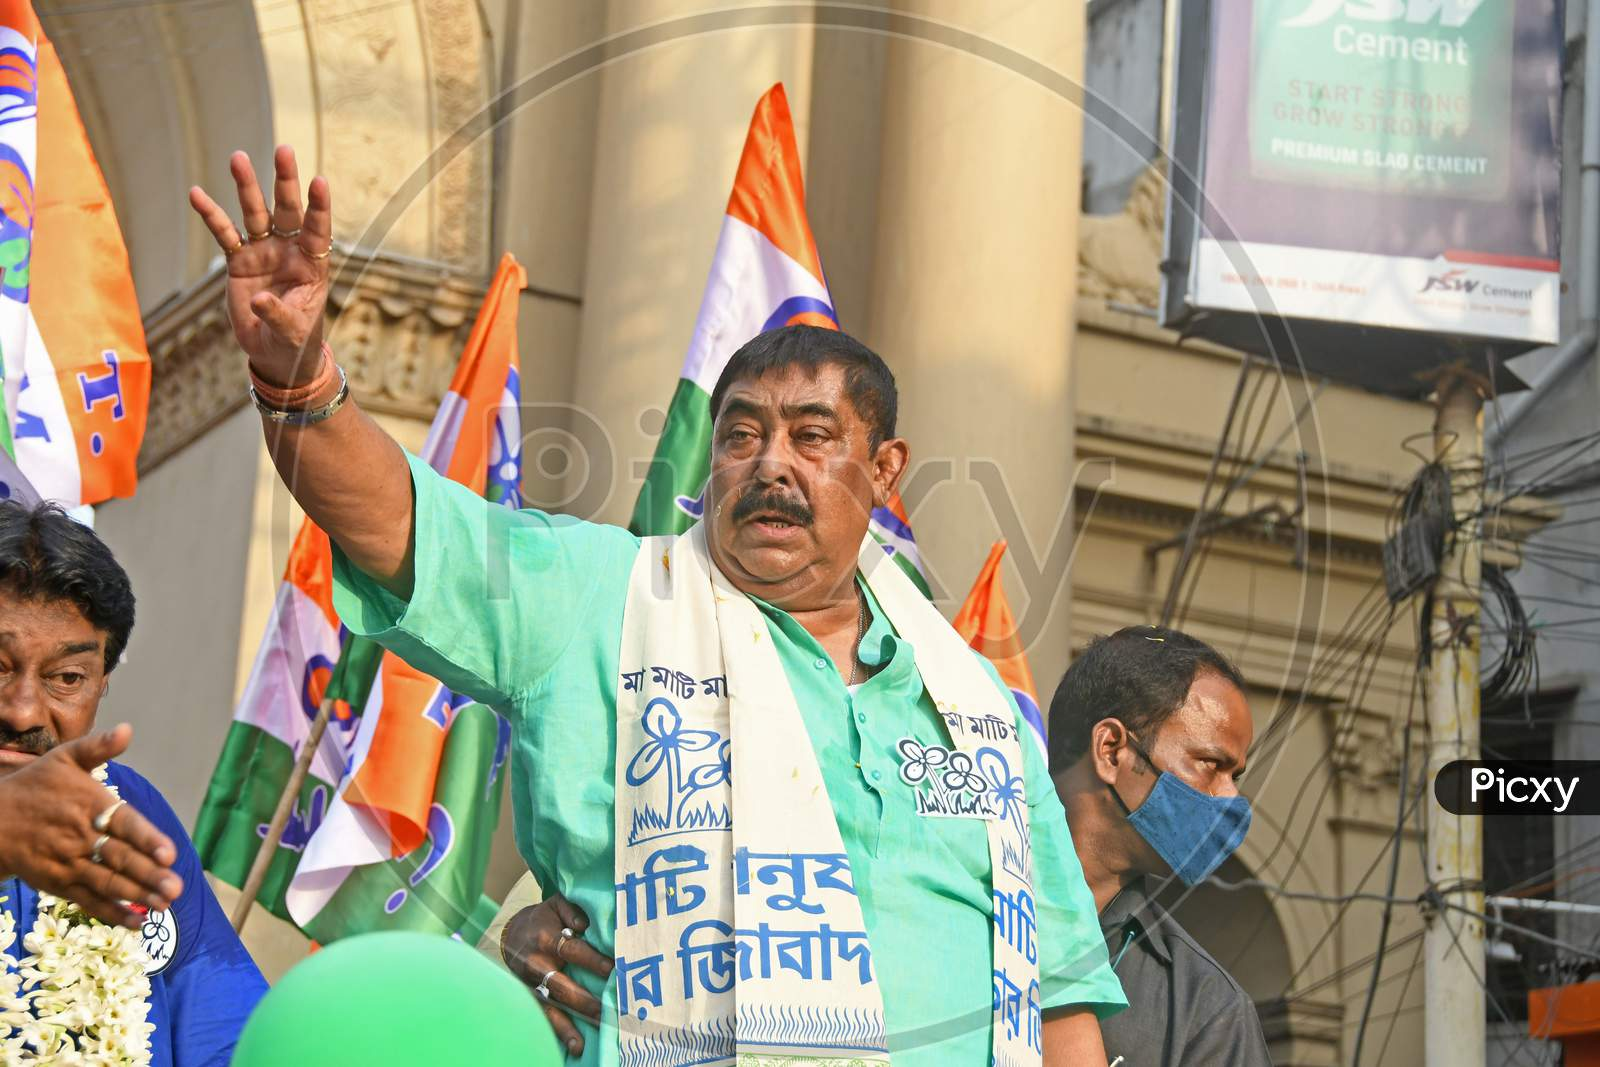 Trinamool Congress leader Anubrata Mondal marched in Burdwan Town in support of AITC candidate from Bardhaman Dakshin Assembly constituency.